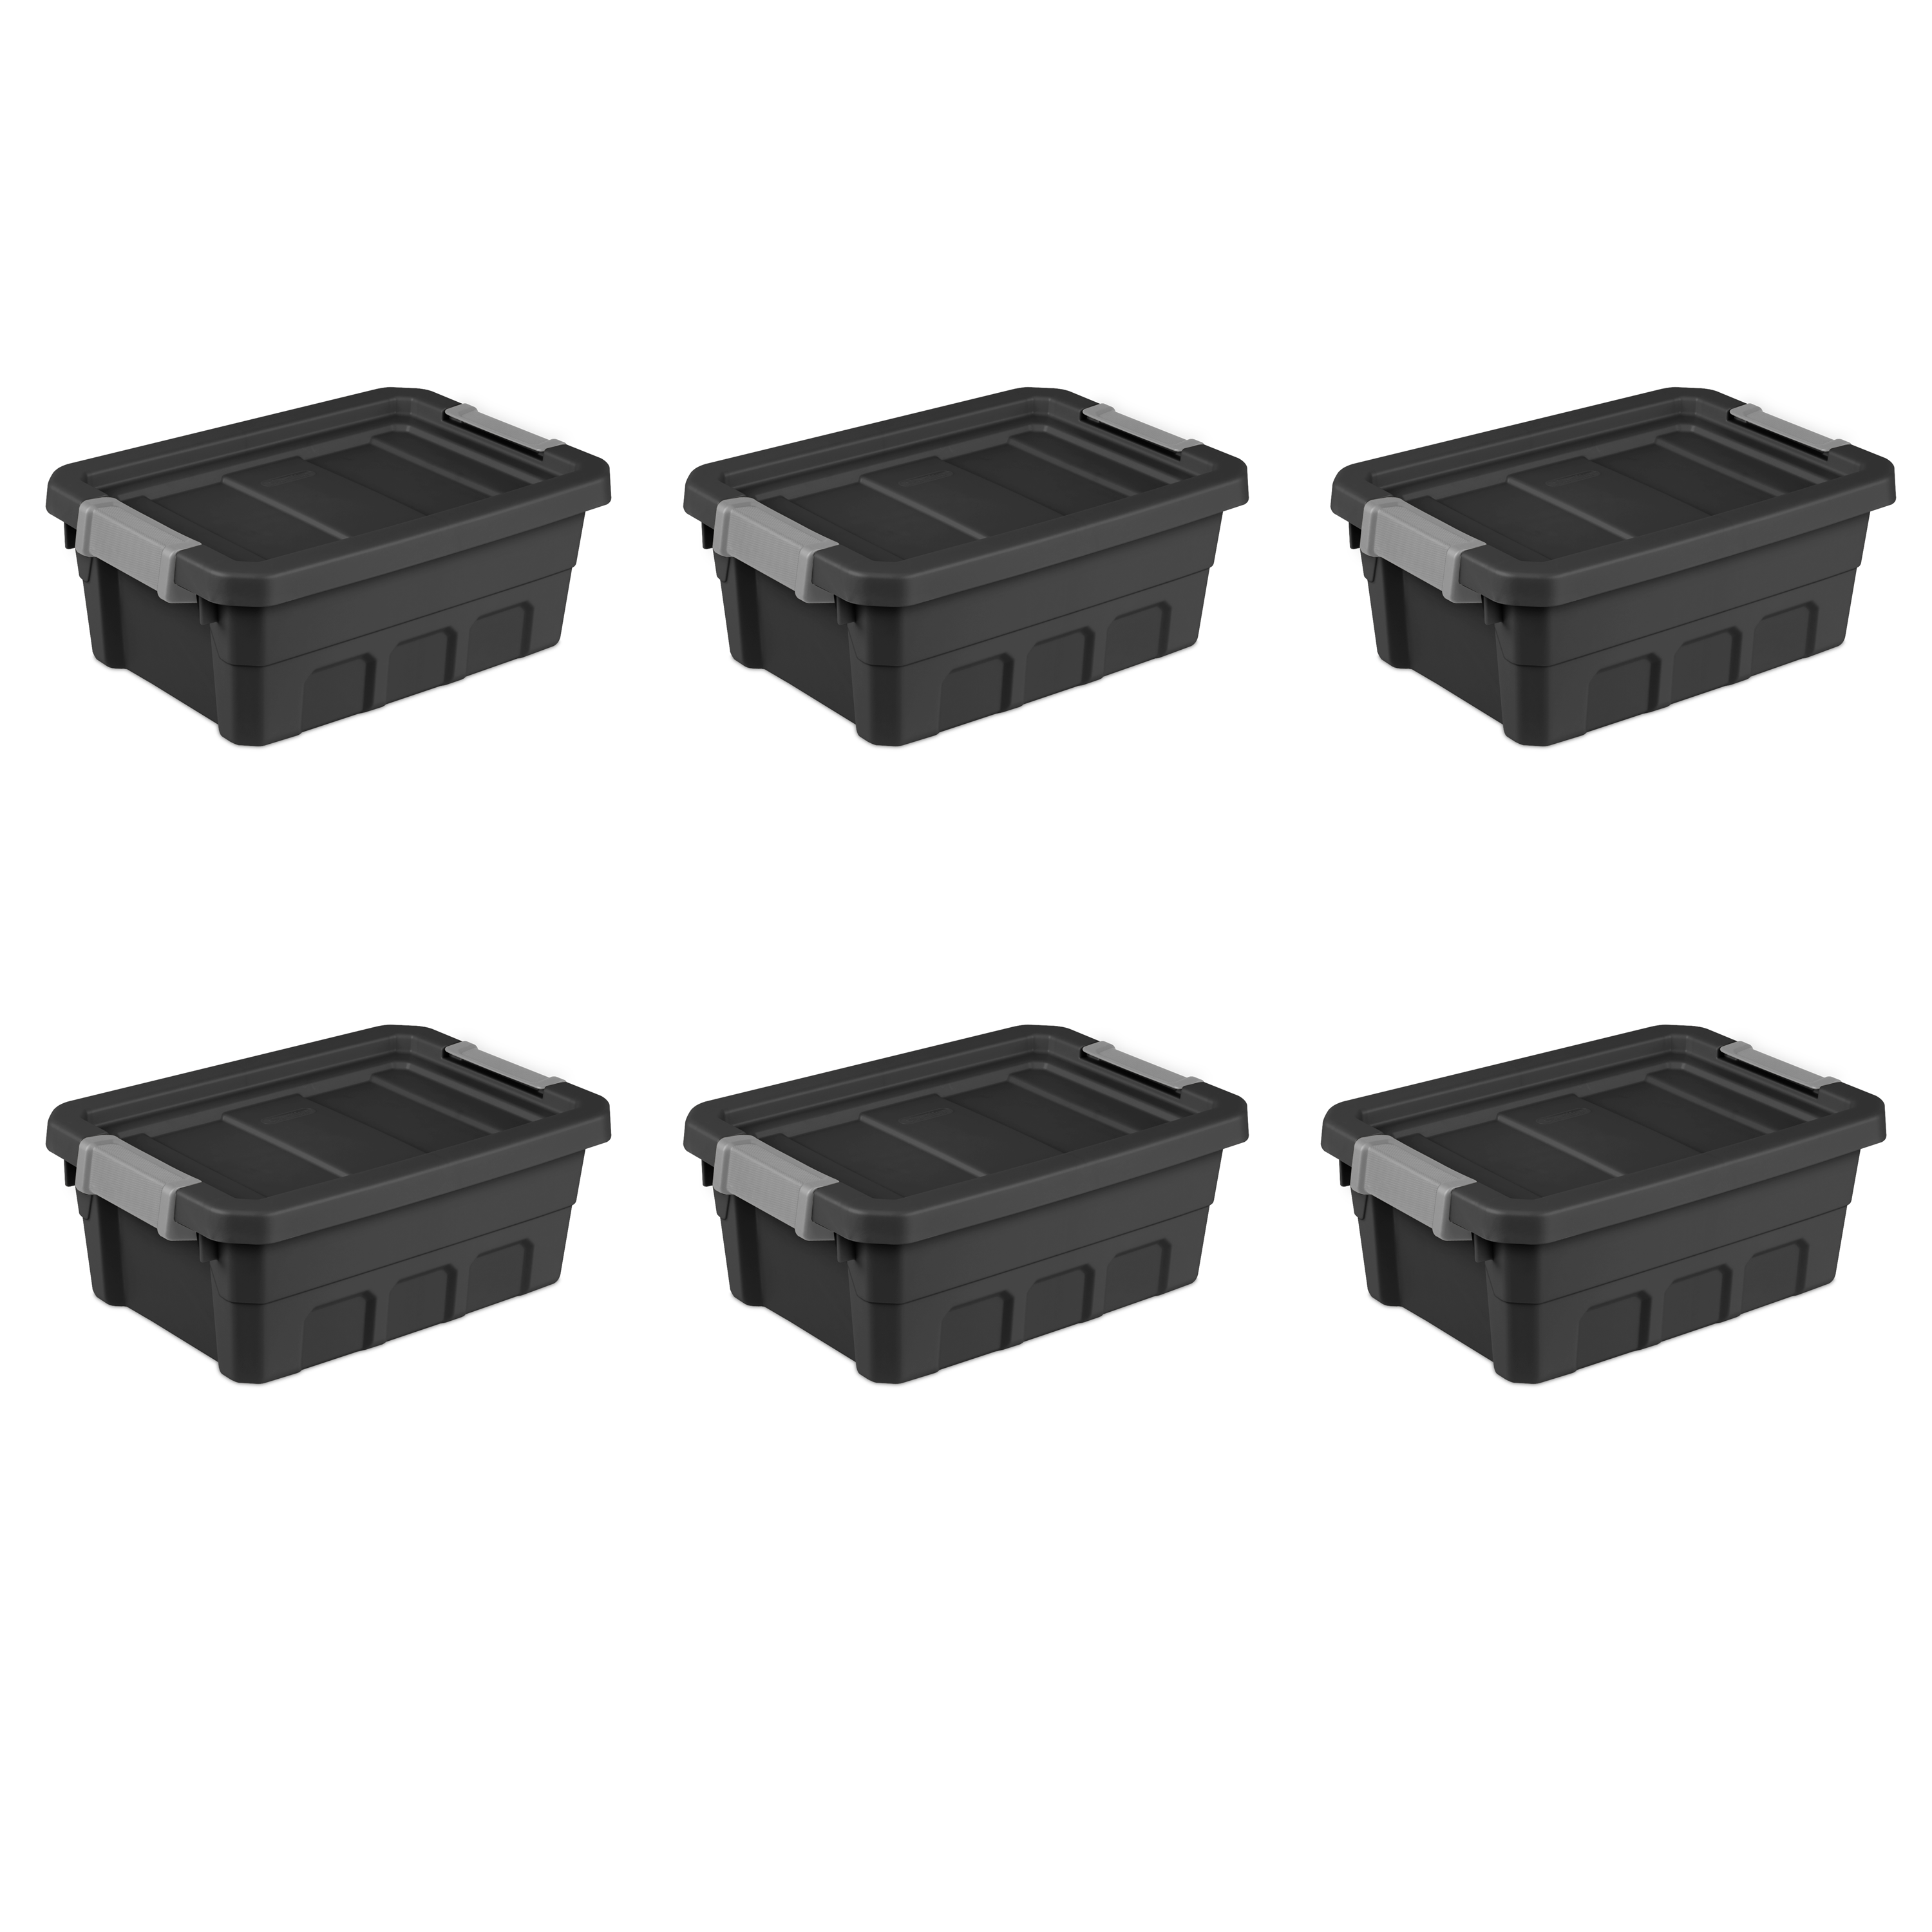 Sterilite 4 Gal Stacker Tote- Black (Available in Case of 6 or Single Unit)